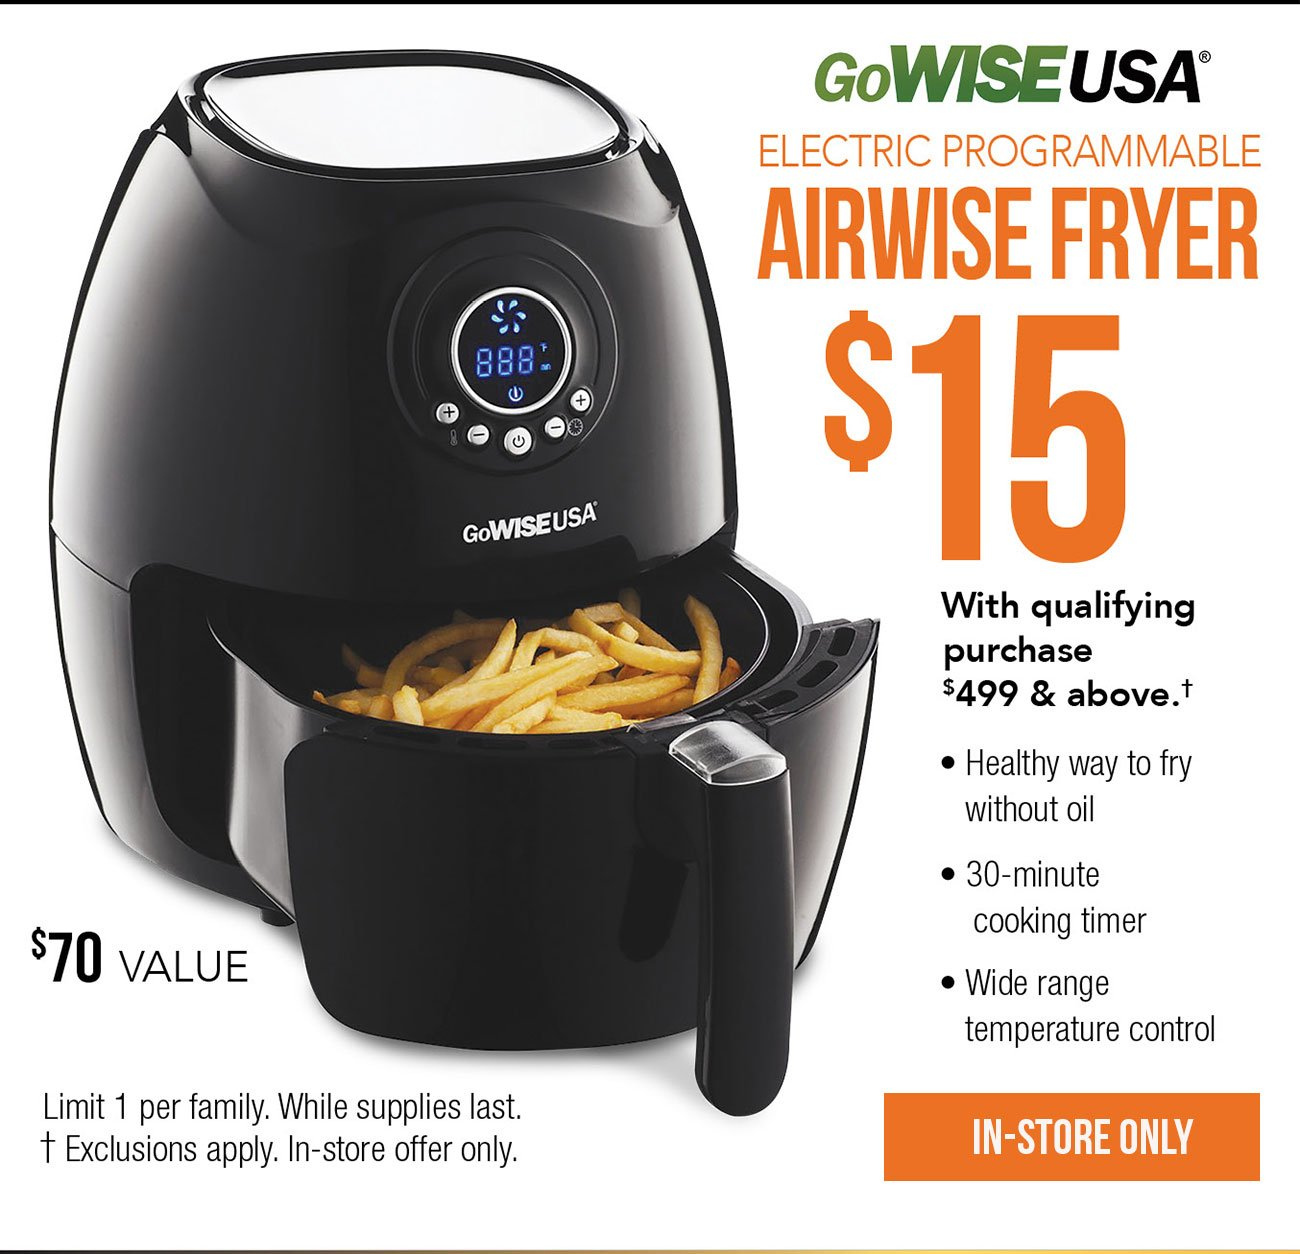 Airwise-Fryer